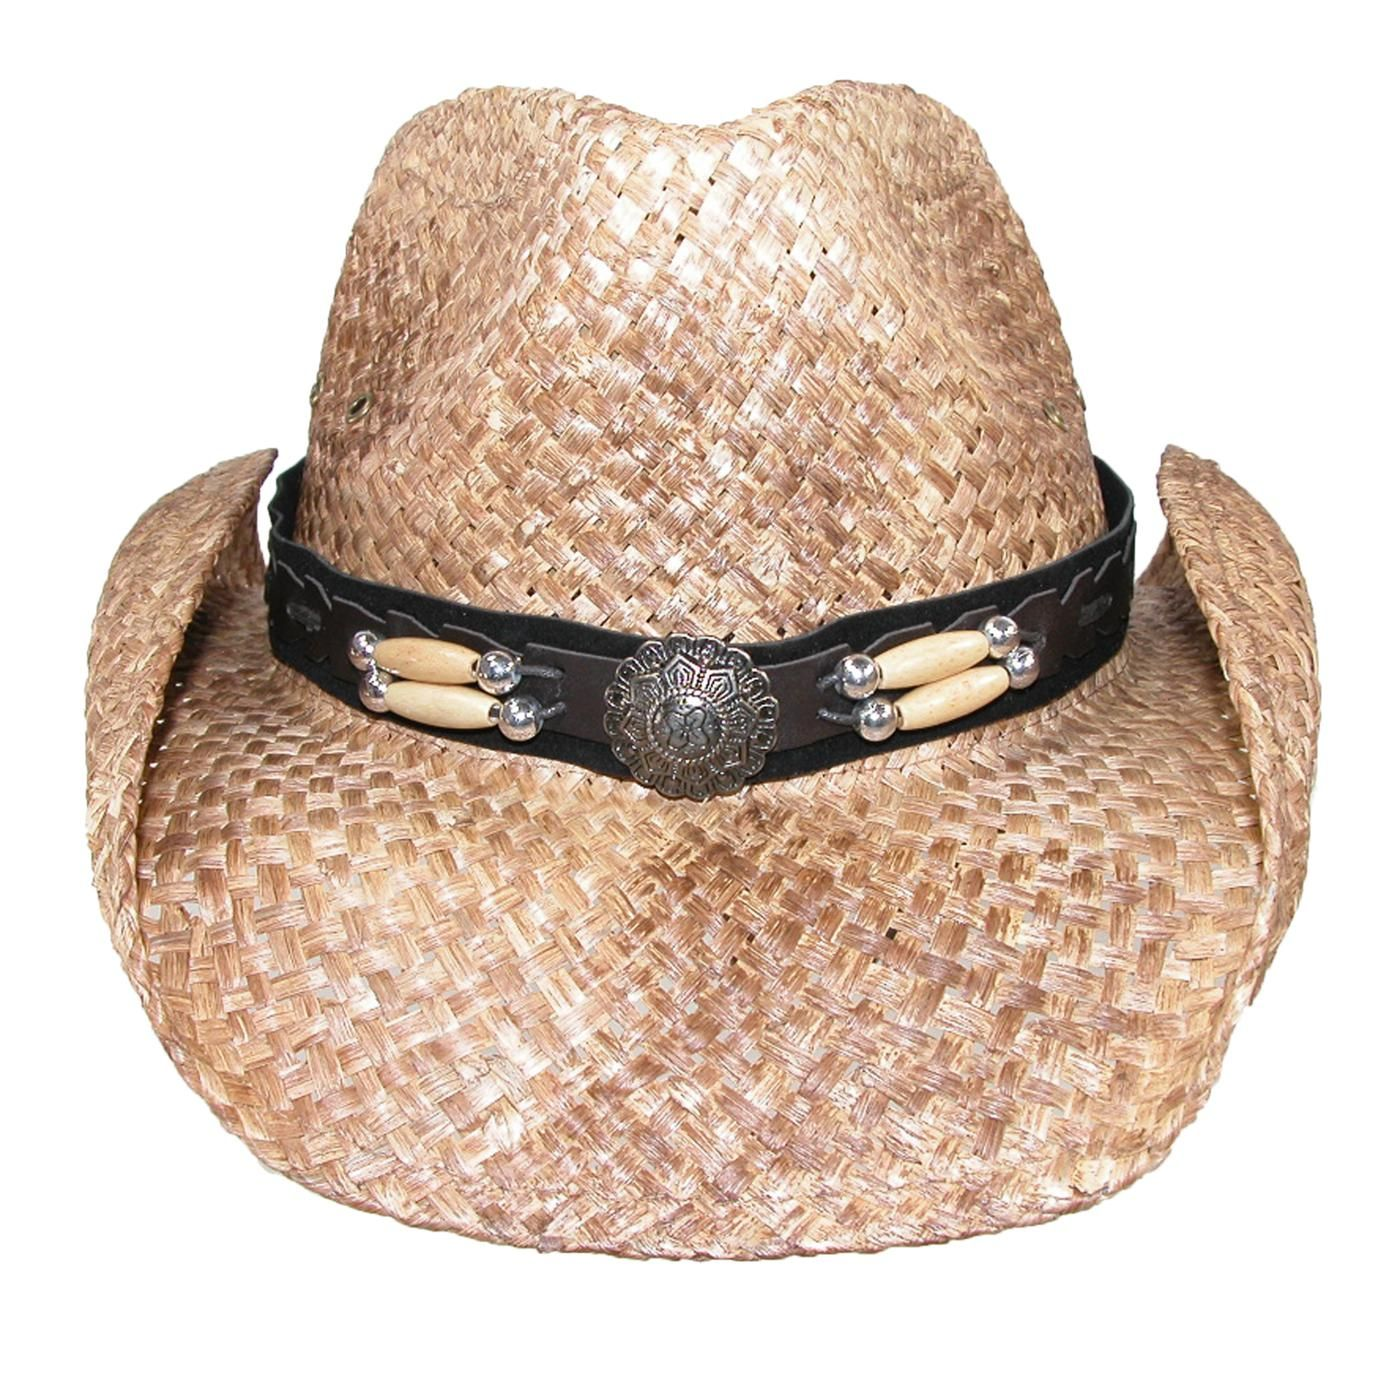 4225e2d432b Peter Grimm Western Straw Hat with CTM® Concho Hat Band. Removable hat  band. One size fits most $29.95